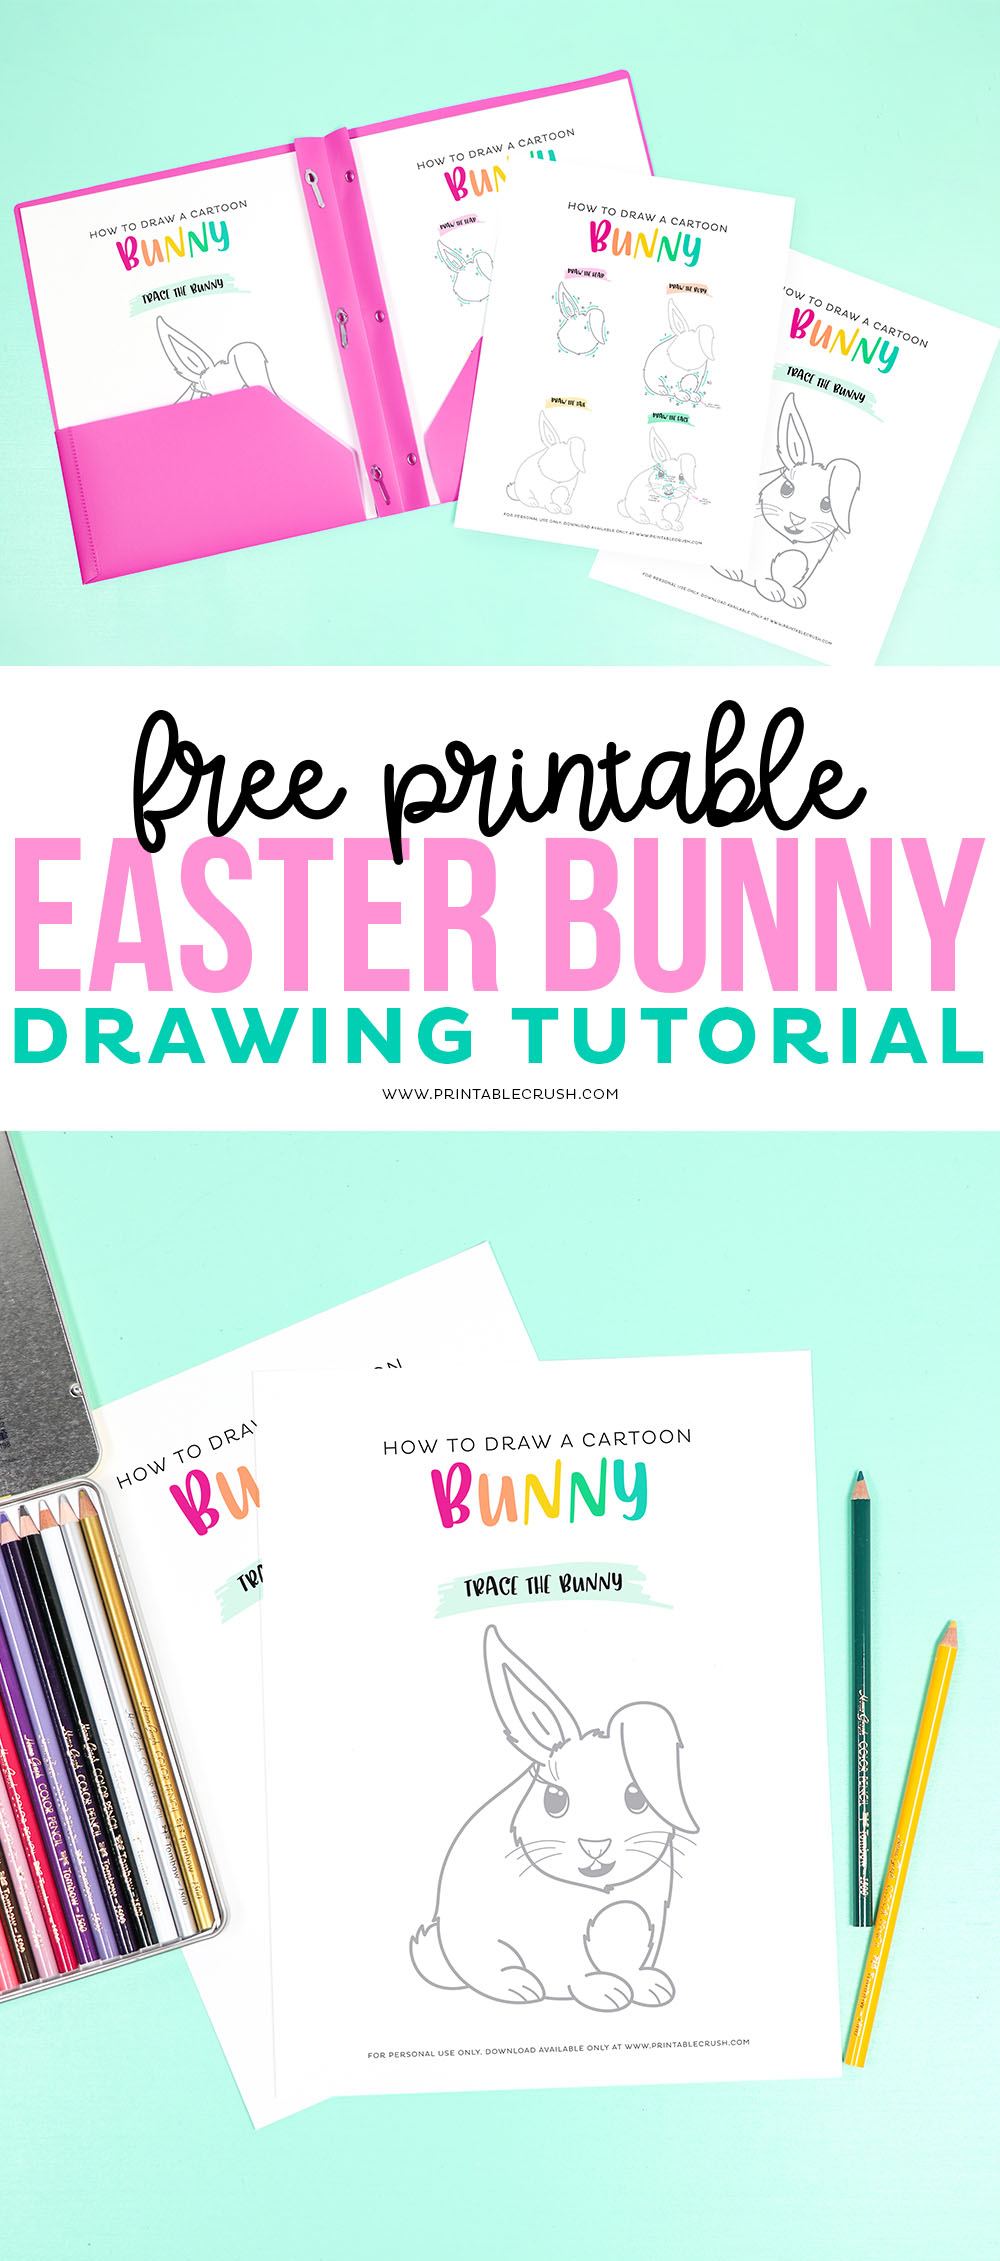 How to Draw an Easter Bunny Free Printable Drawing Tutorial - Cartoon Easter Bunny Drawing Tutorial #drawingtutorial #freeprintable #easterprintable #easterbunny via @printablecrush